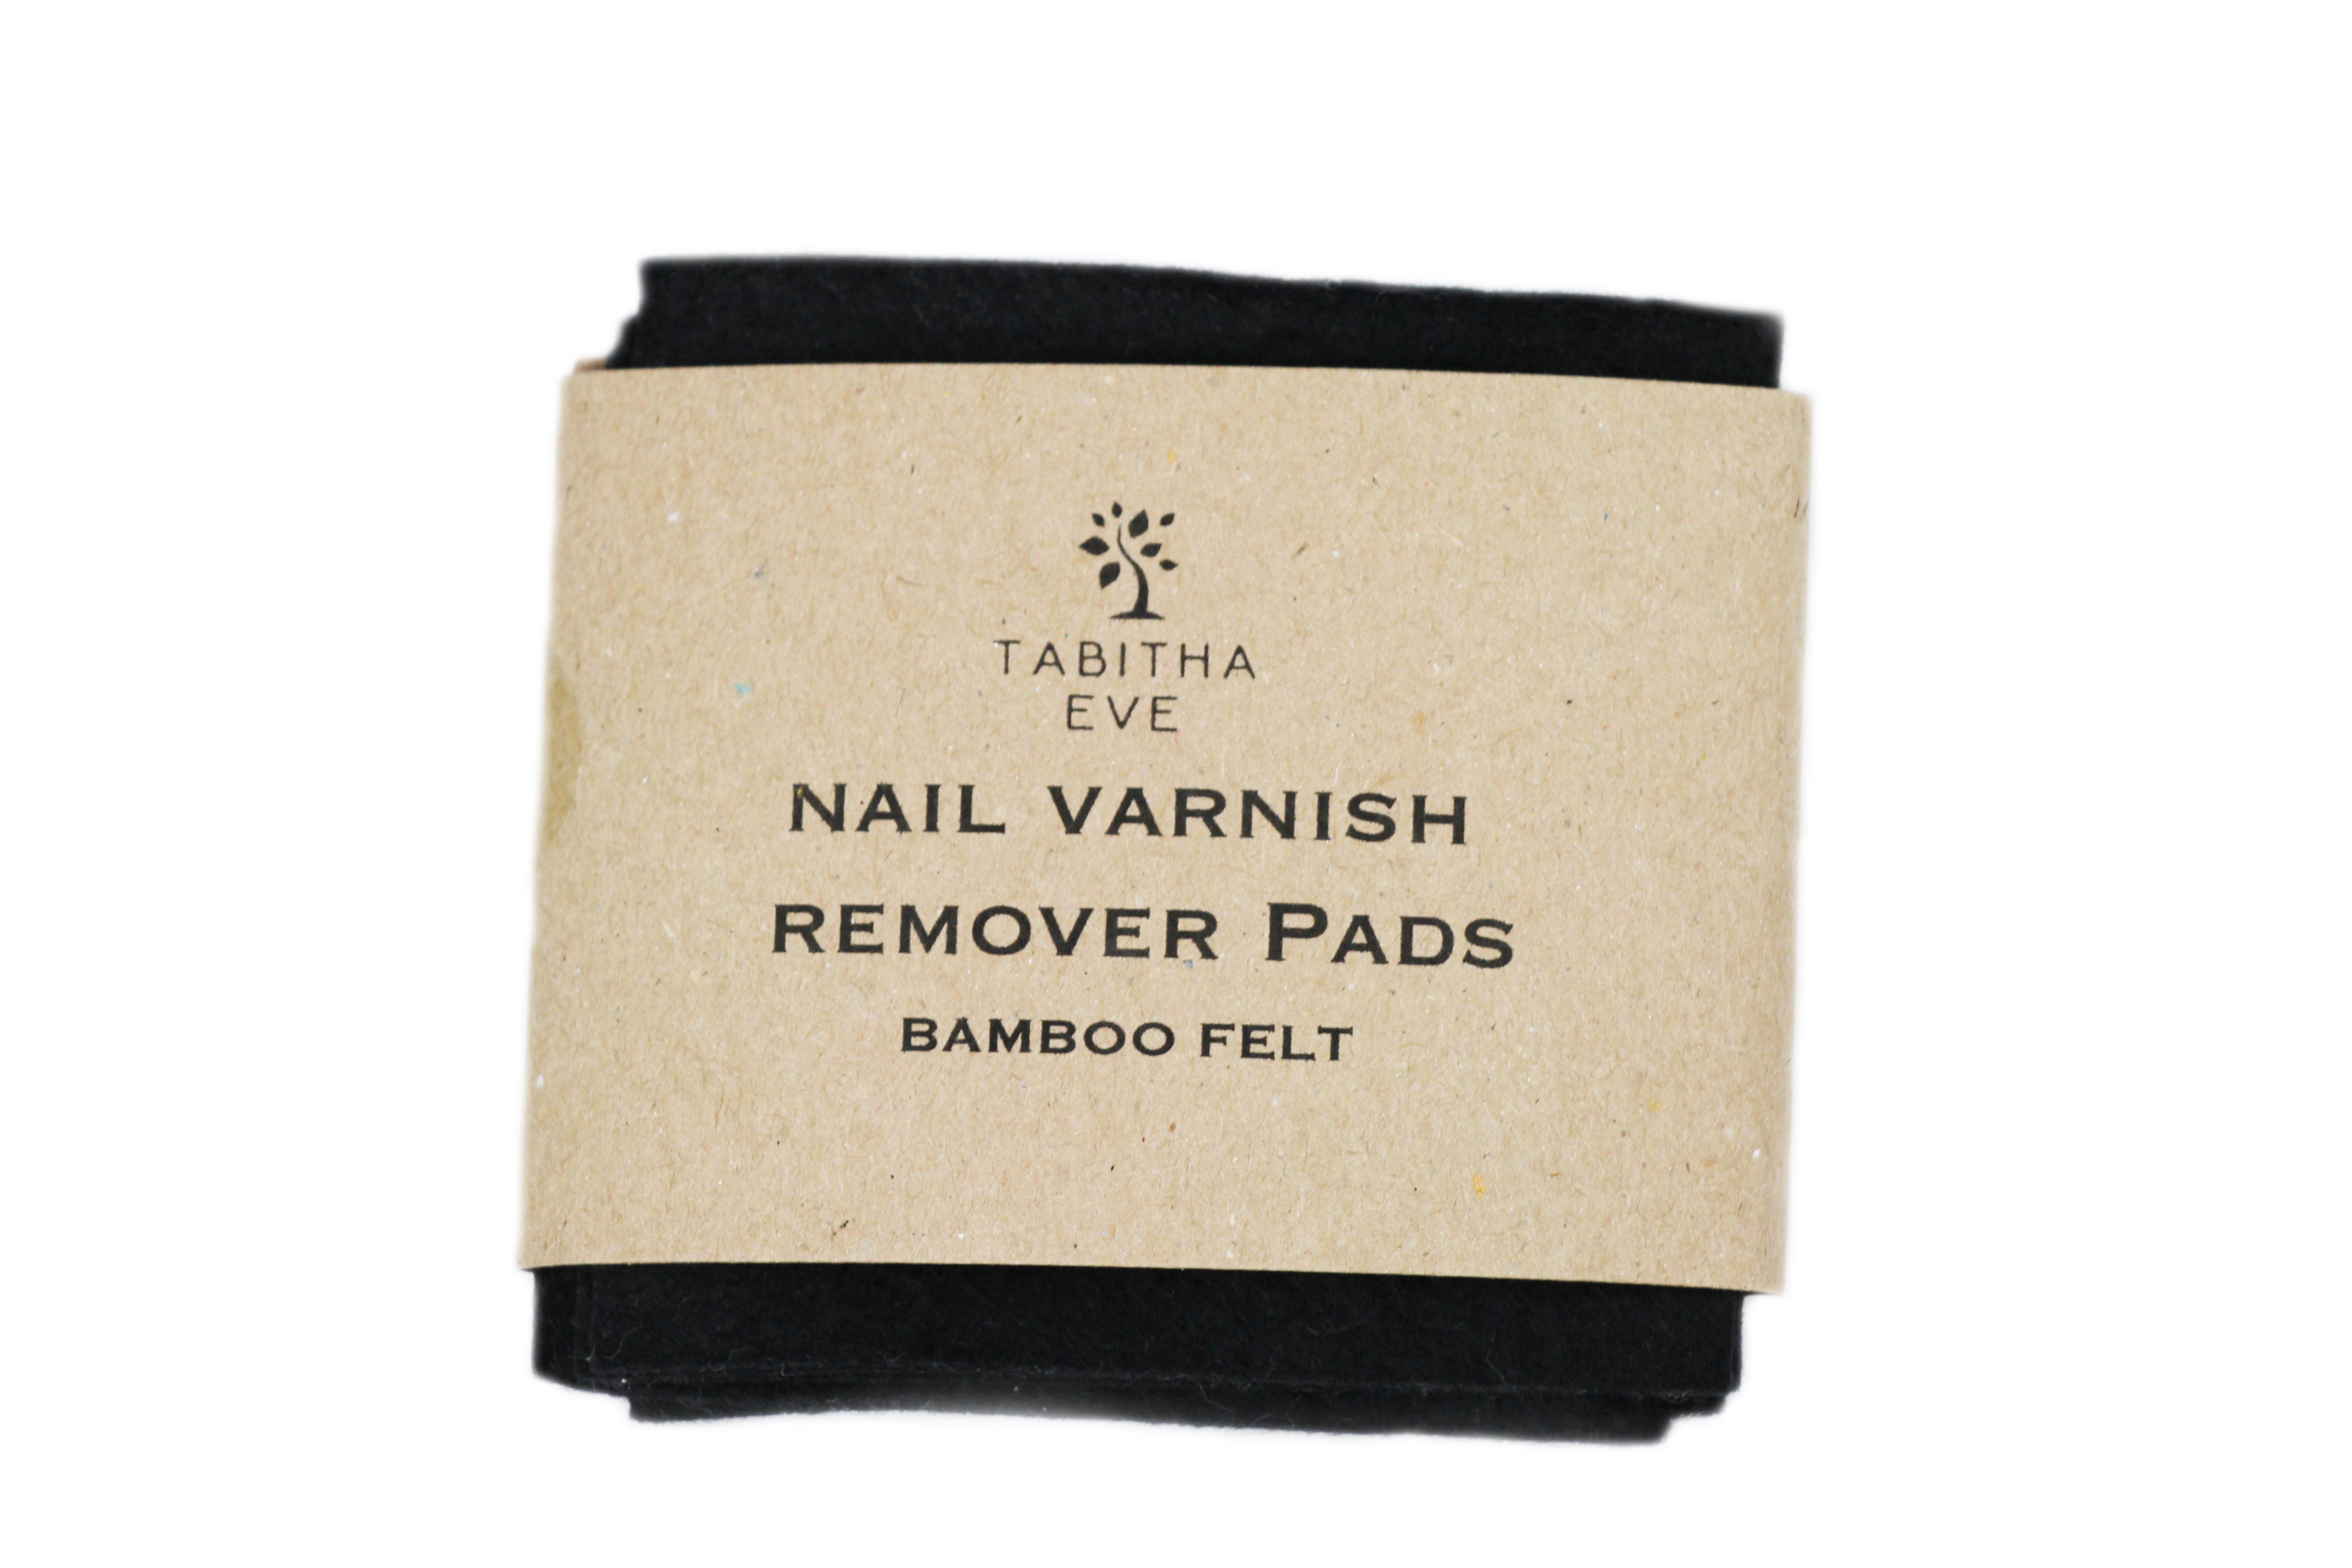 Tabitha Eve Co. Reusable Bamboo Nail Varnish Remover Pads Front View